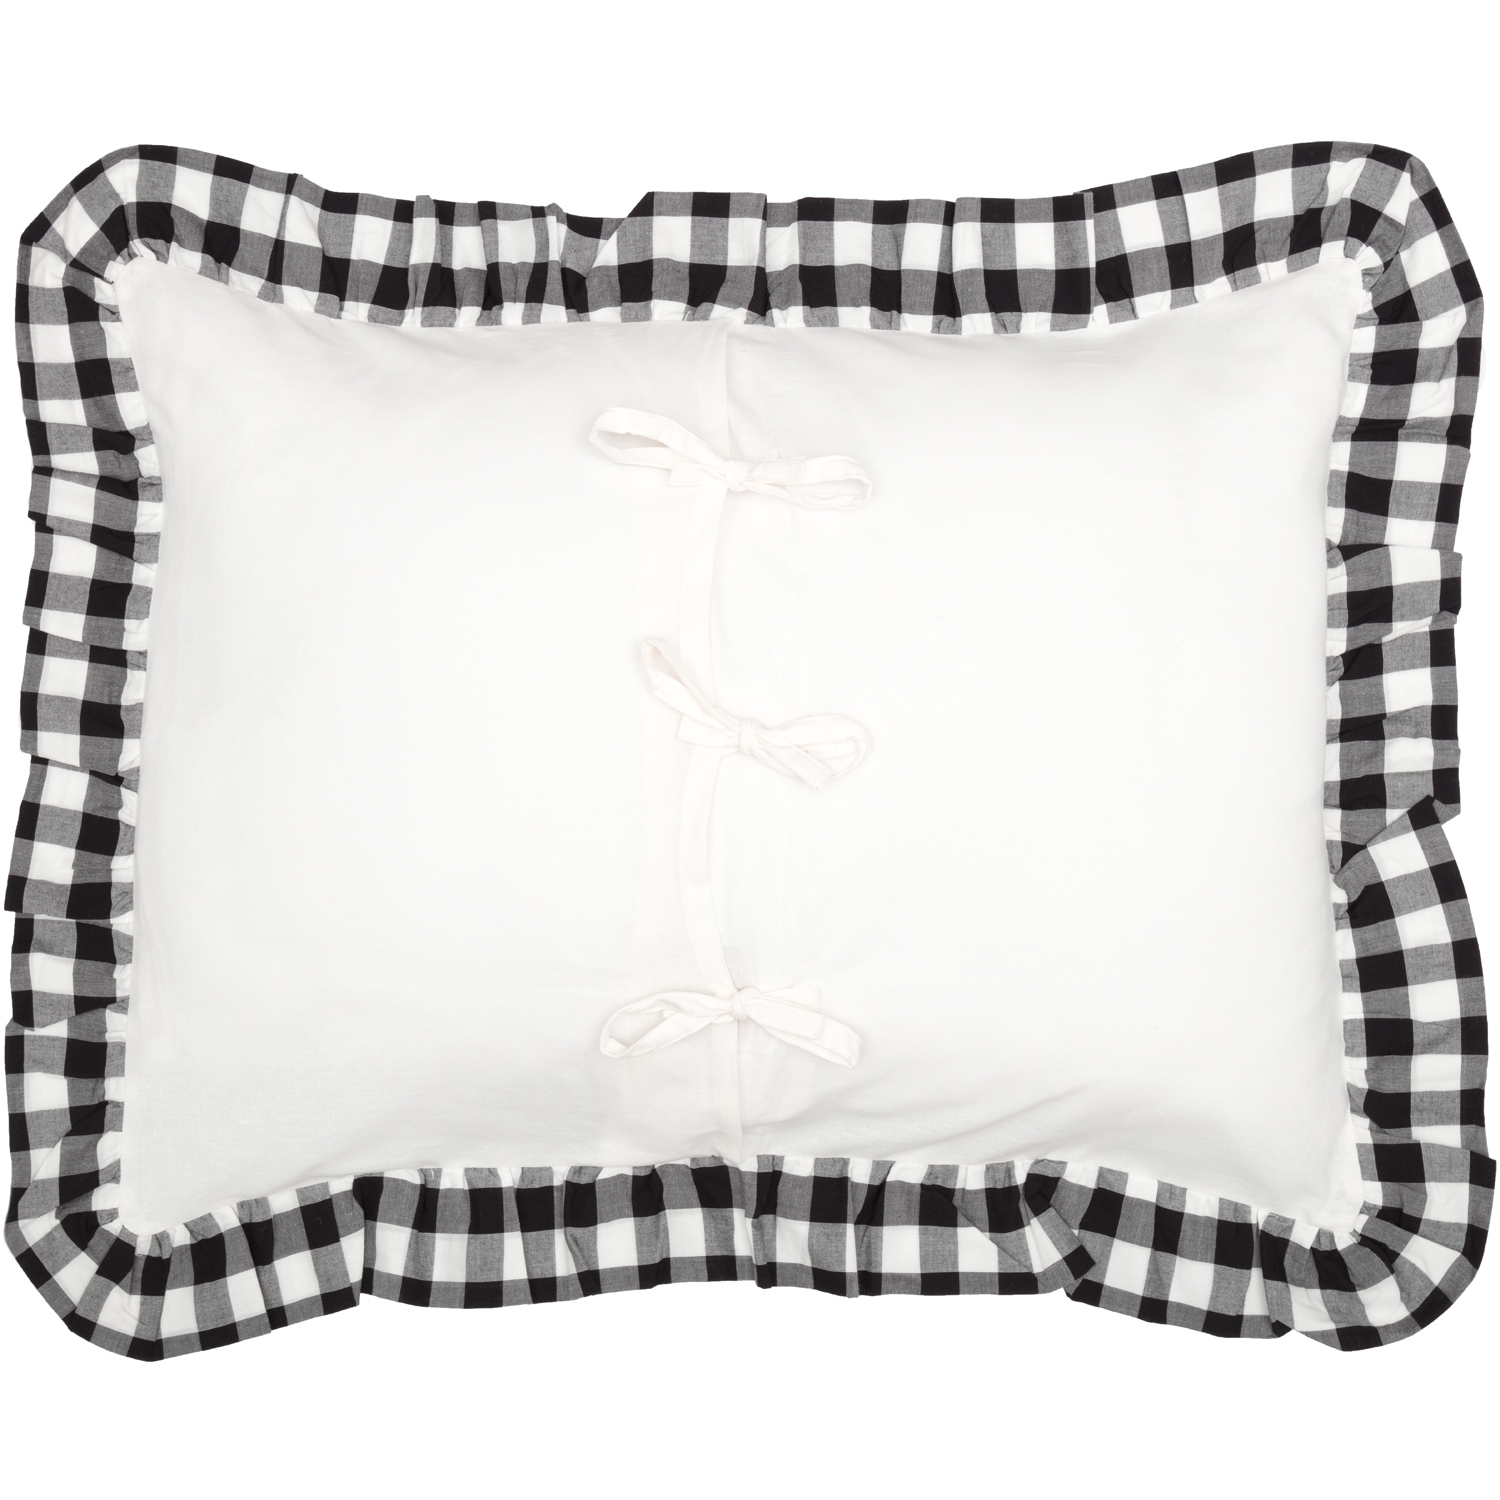 Annie Buffalo Black Check Ruffled Standard Sham 21x27